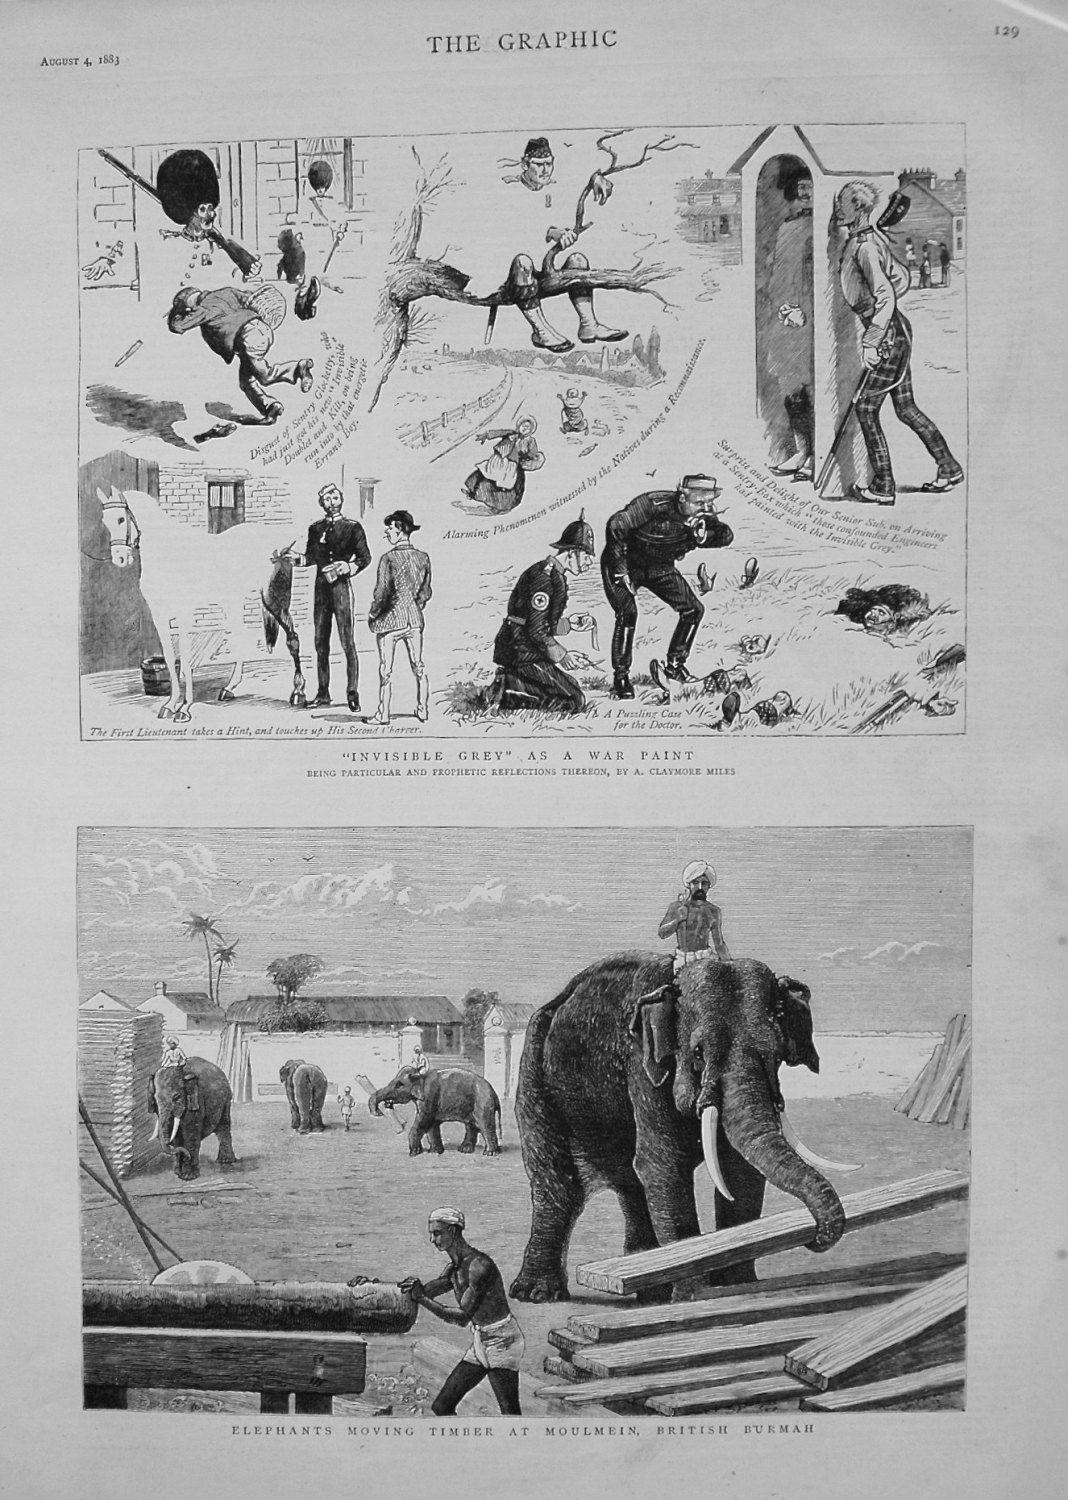 Elephants Moving Timber at Moulmein, British Burmah. 1883.